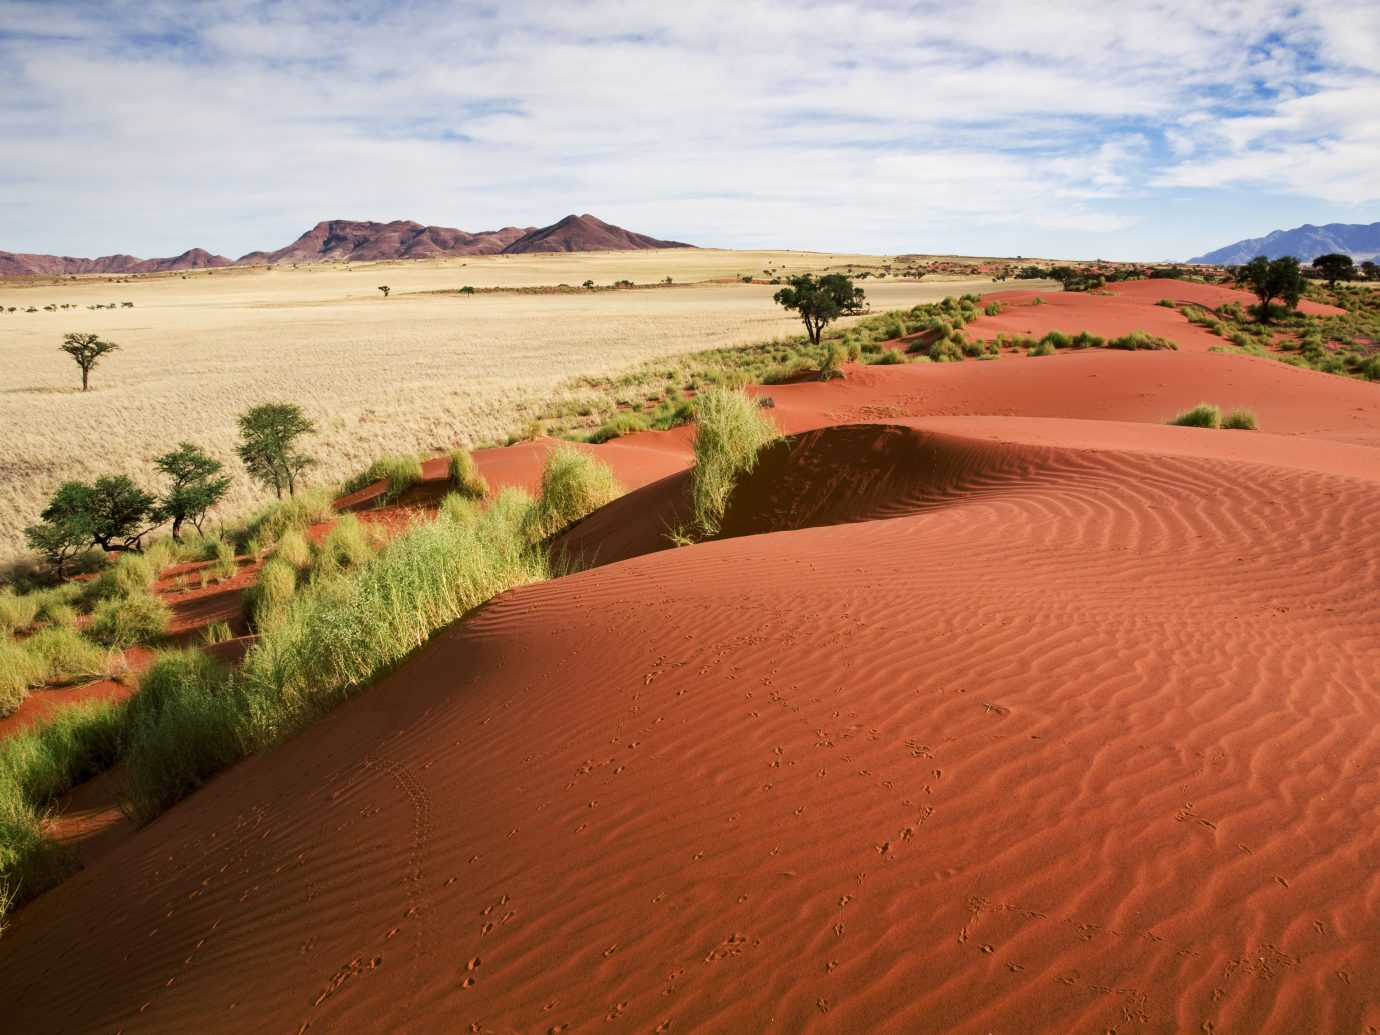 prairie landscape and sand dunes in Namibia, South West Africa.